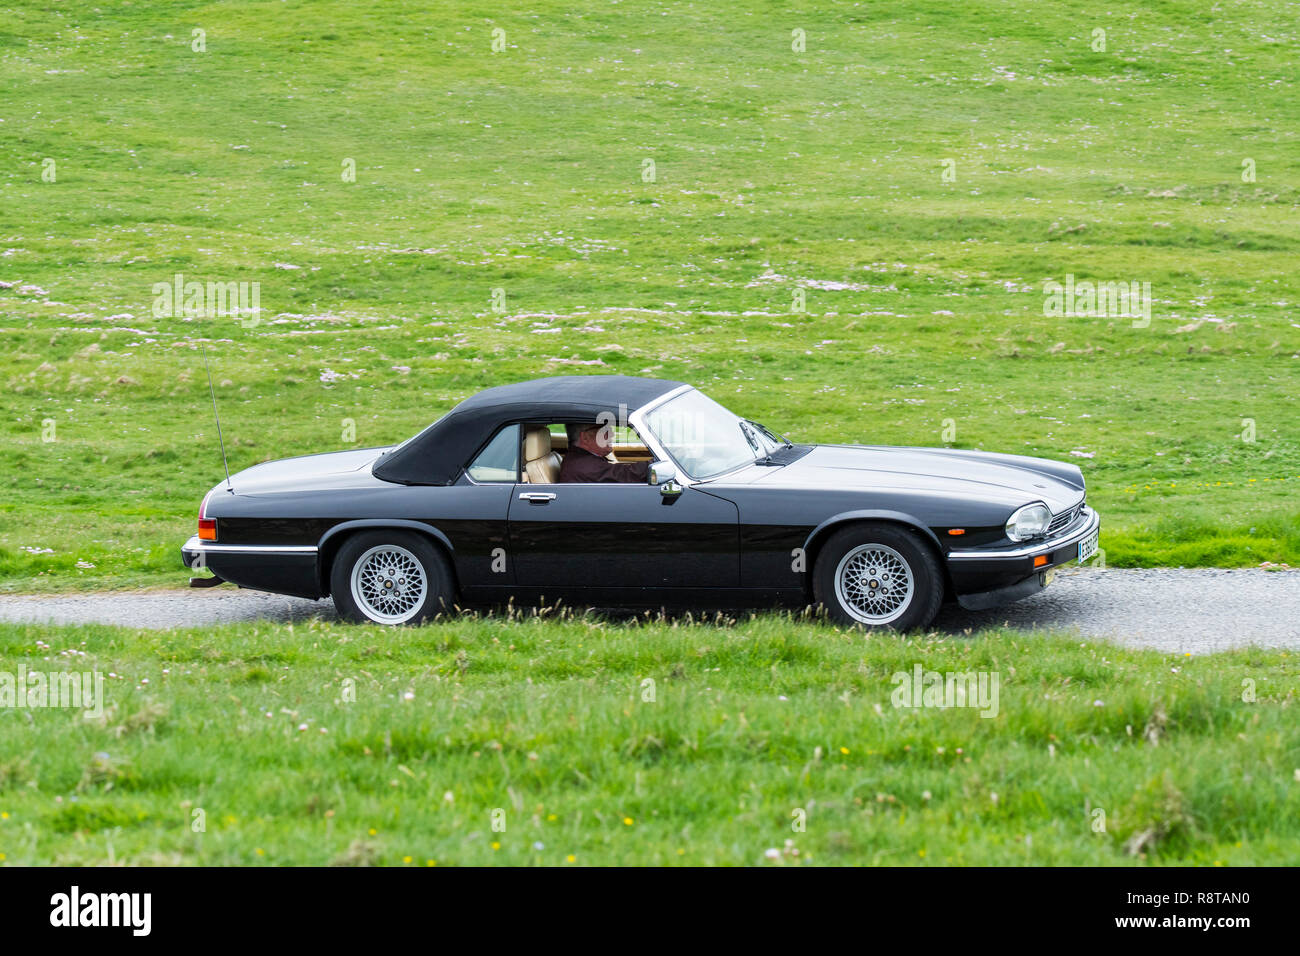 Black 1988 Jaguar XJ-S V12 convertible classic sports car driving along country road through meadow - Stock Image